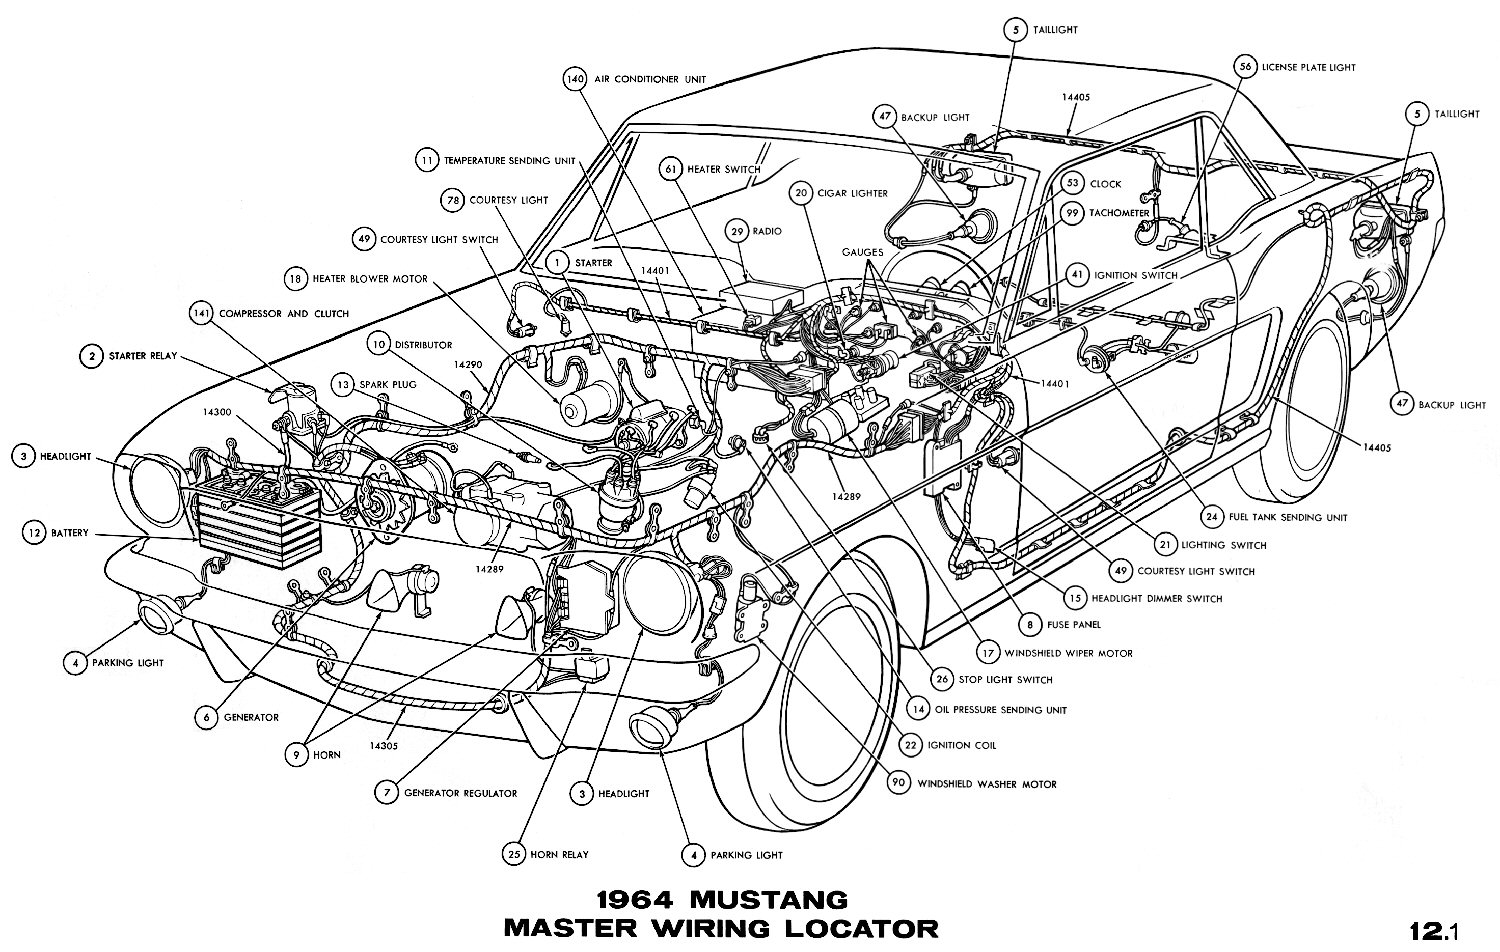 1964 mustang wiring diagrams average joe restoration 1964 mustang master wiring pictorial